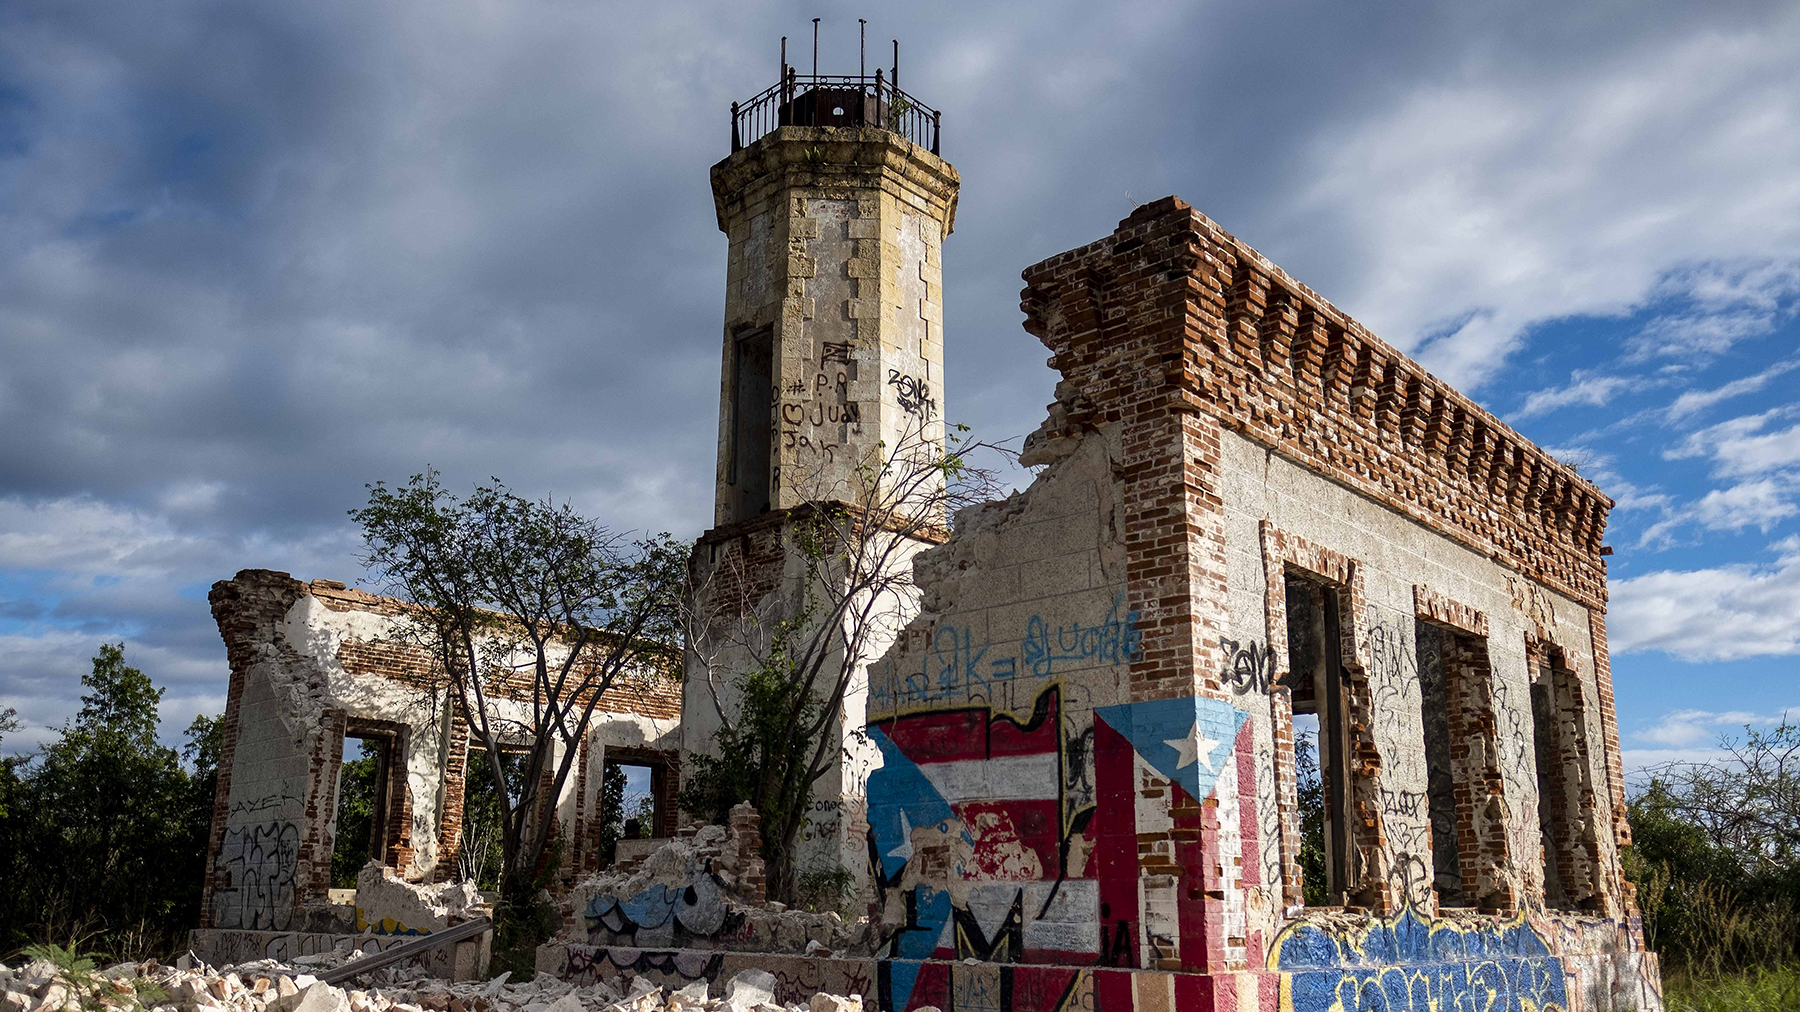 The collapsed wall of the ruins of an iconic landmark lighthouse is seen in Guanica, Puerto Rico on January 6, 2020, after it was destroyed by an earthquake. (Photo by RICARDO ARDUENGO/AFP via Getty Images)